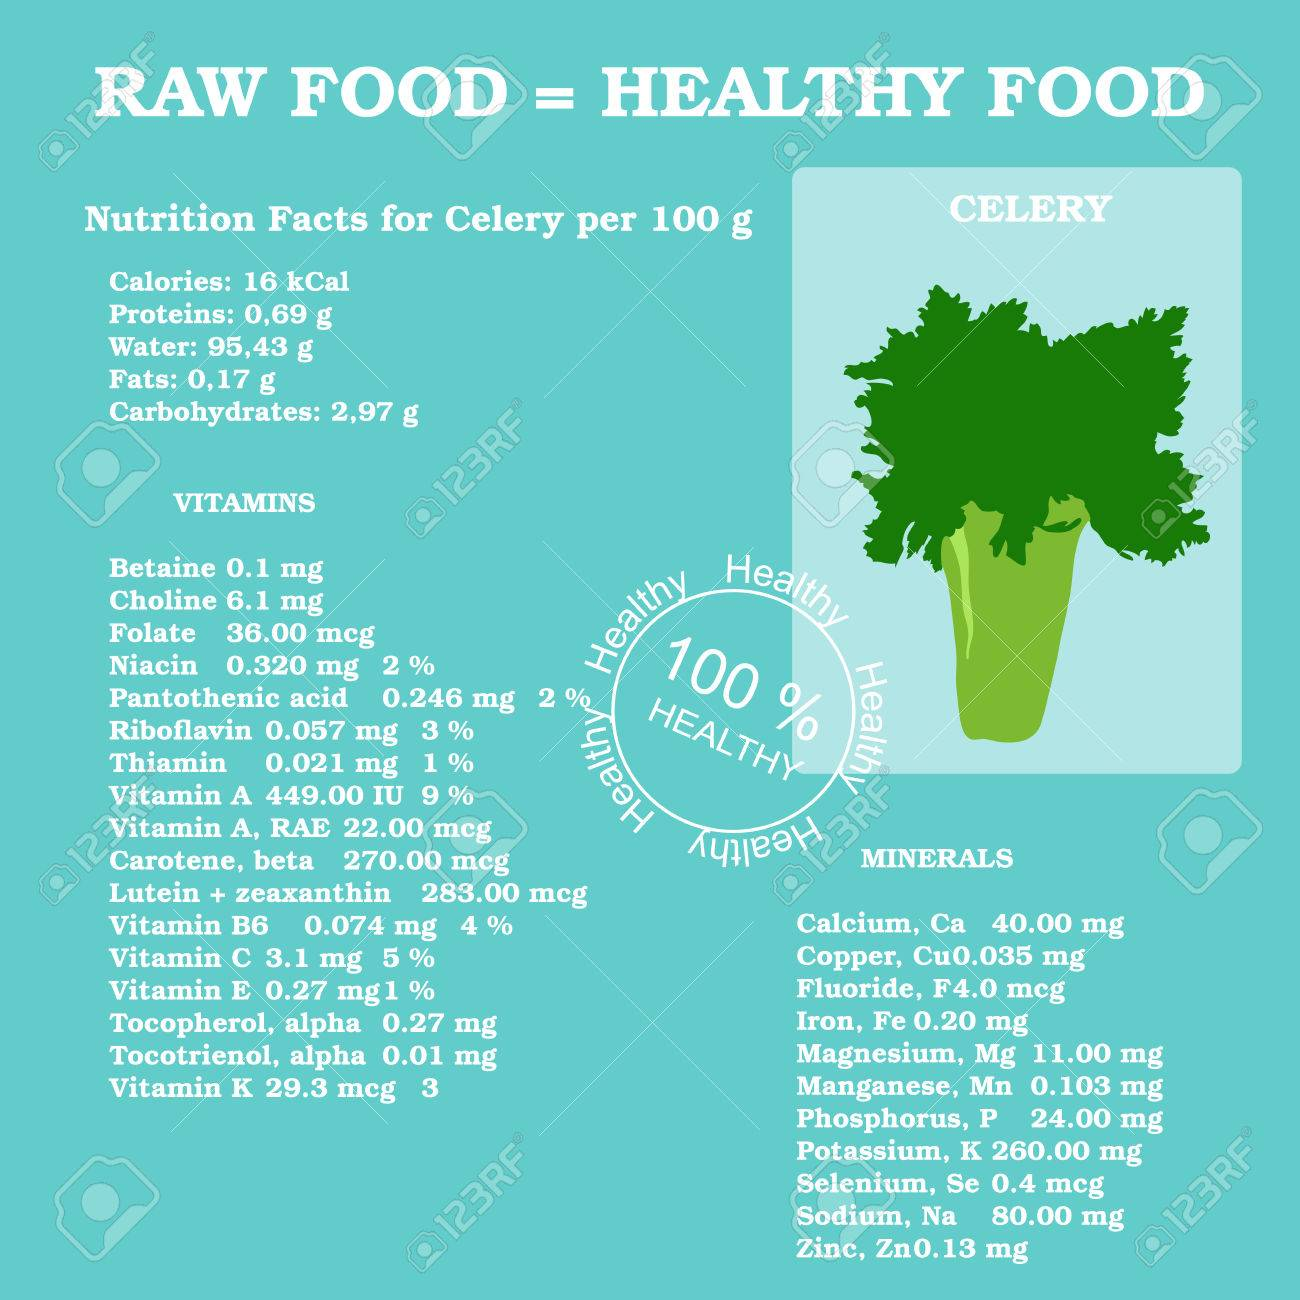 Nutrition Facts For Celery In Flat Style Royalty Free Cliparts Vectors And Stock Illustration Image 56434358